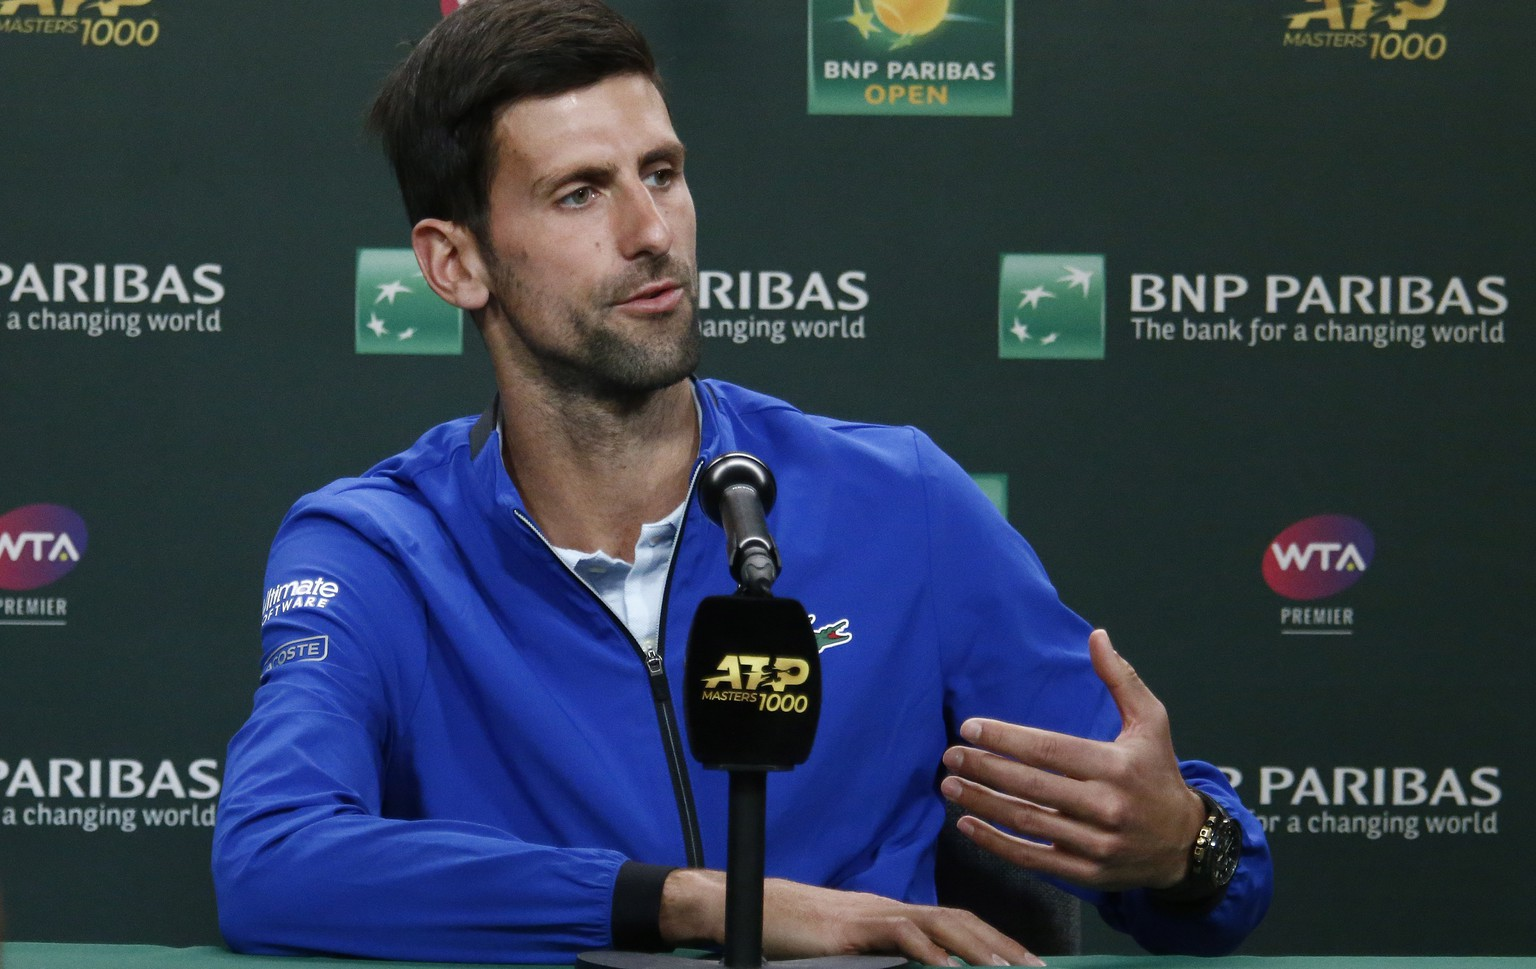 epa07420951 Novak Djokovic of Serbia speaks during a press conference at the Indian Well Tennis Garden in Indian Wells, California, USA, 07 March 2019. The men's and women's final will be played on 17 March 2019.  EPA/LARRY W. SMITH